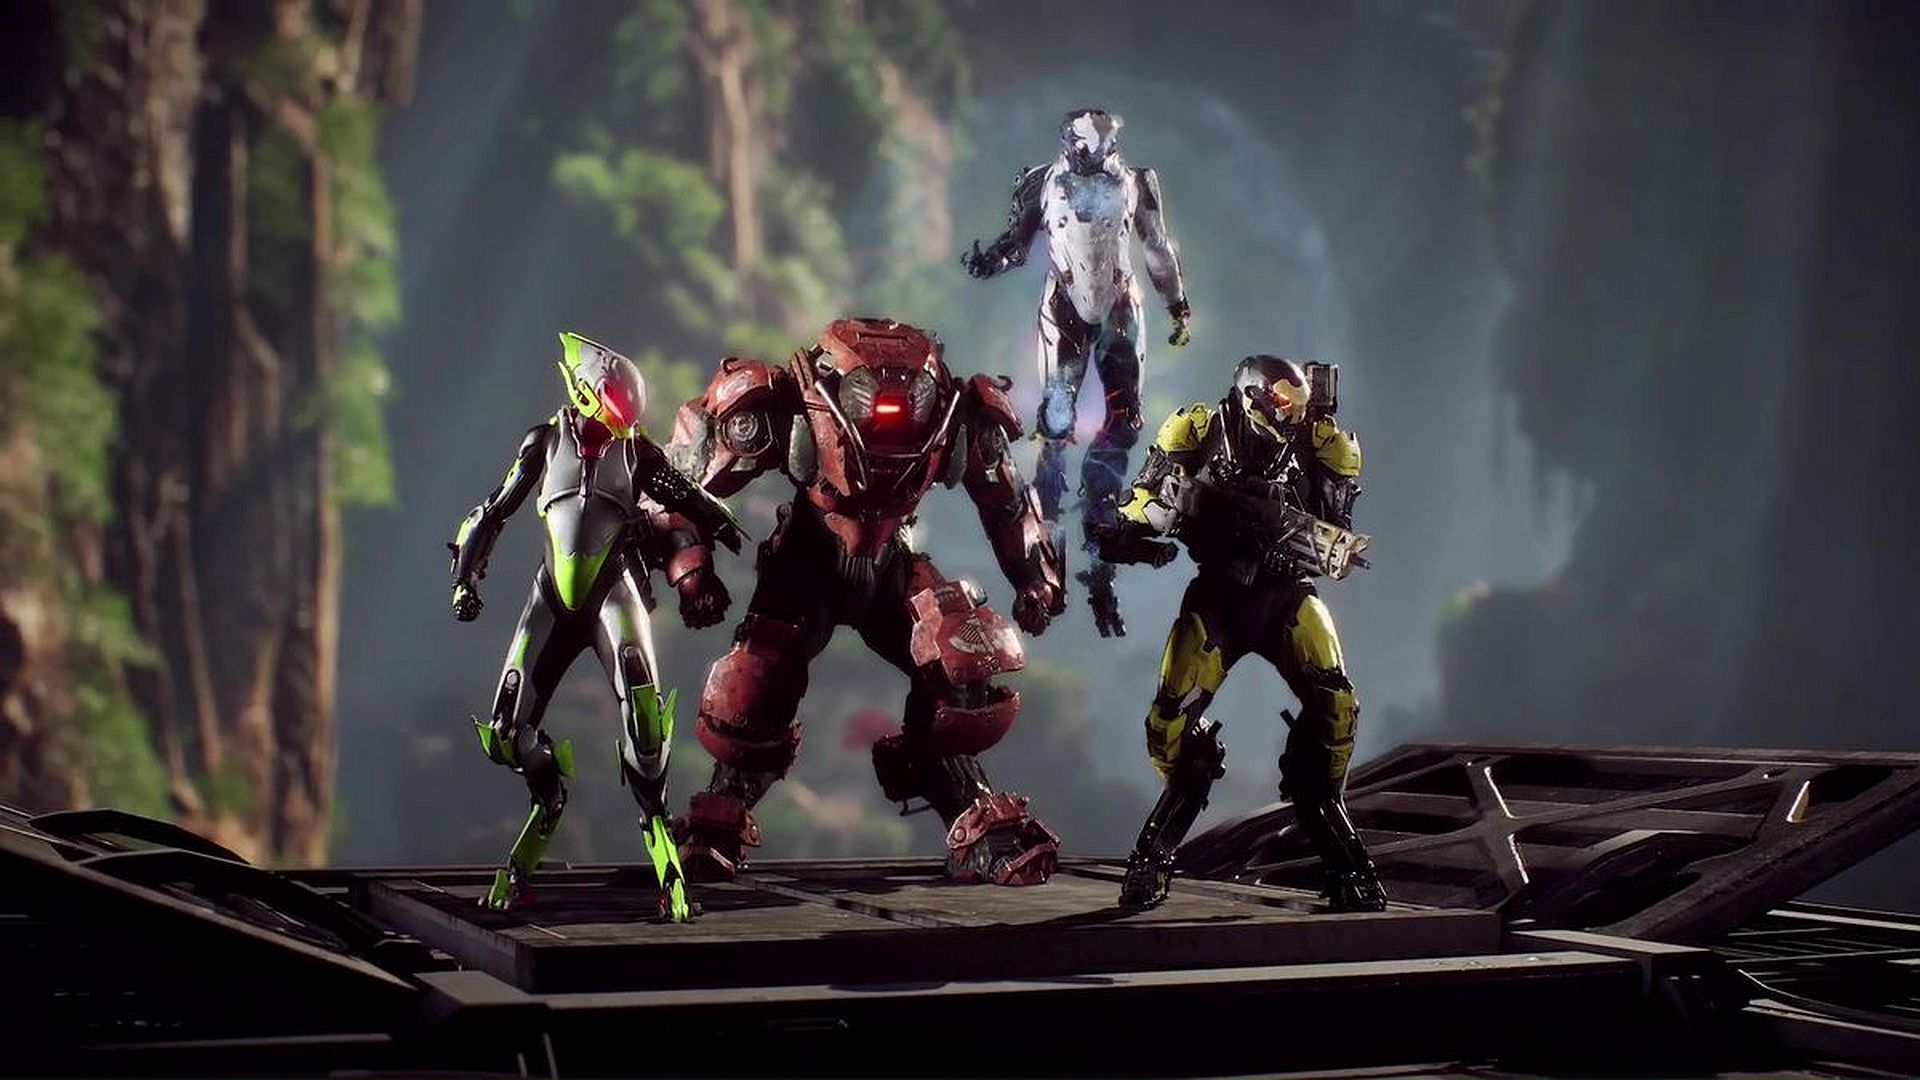 how long Anthem is and how many missions there are